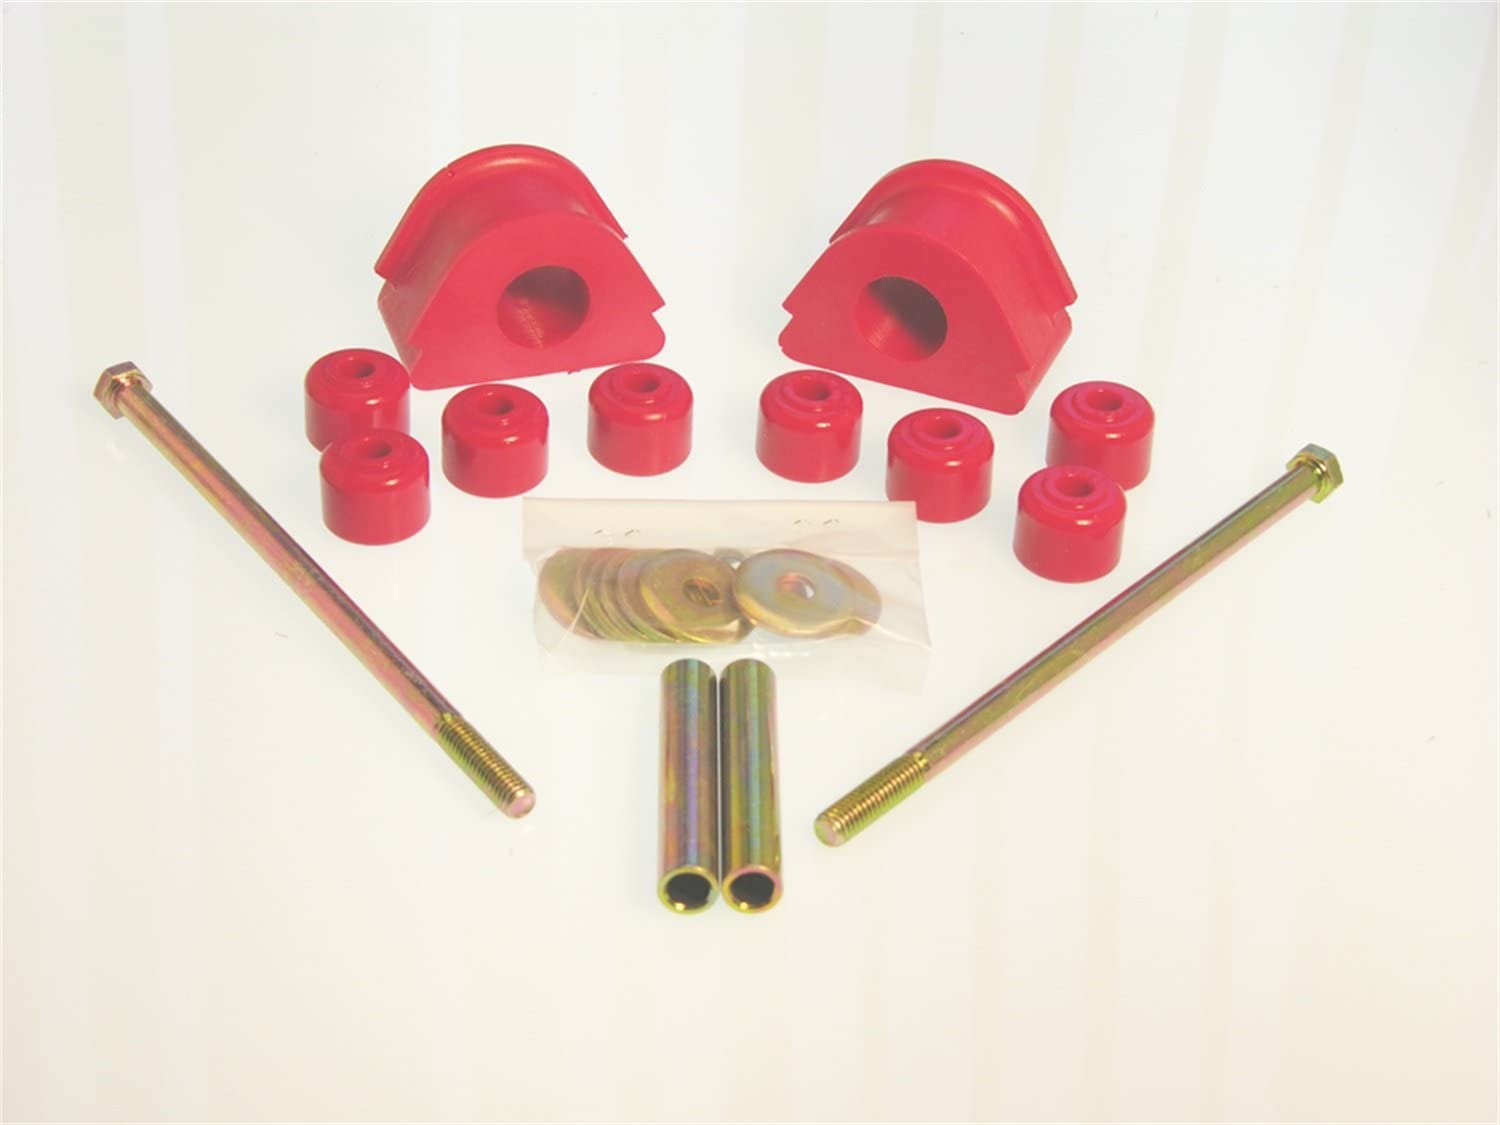 2021 autumn and winter new Prothane 6-1154 Red 27 mm Popular product Kit Front Sway Bushing Bar